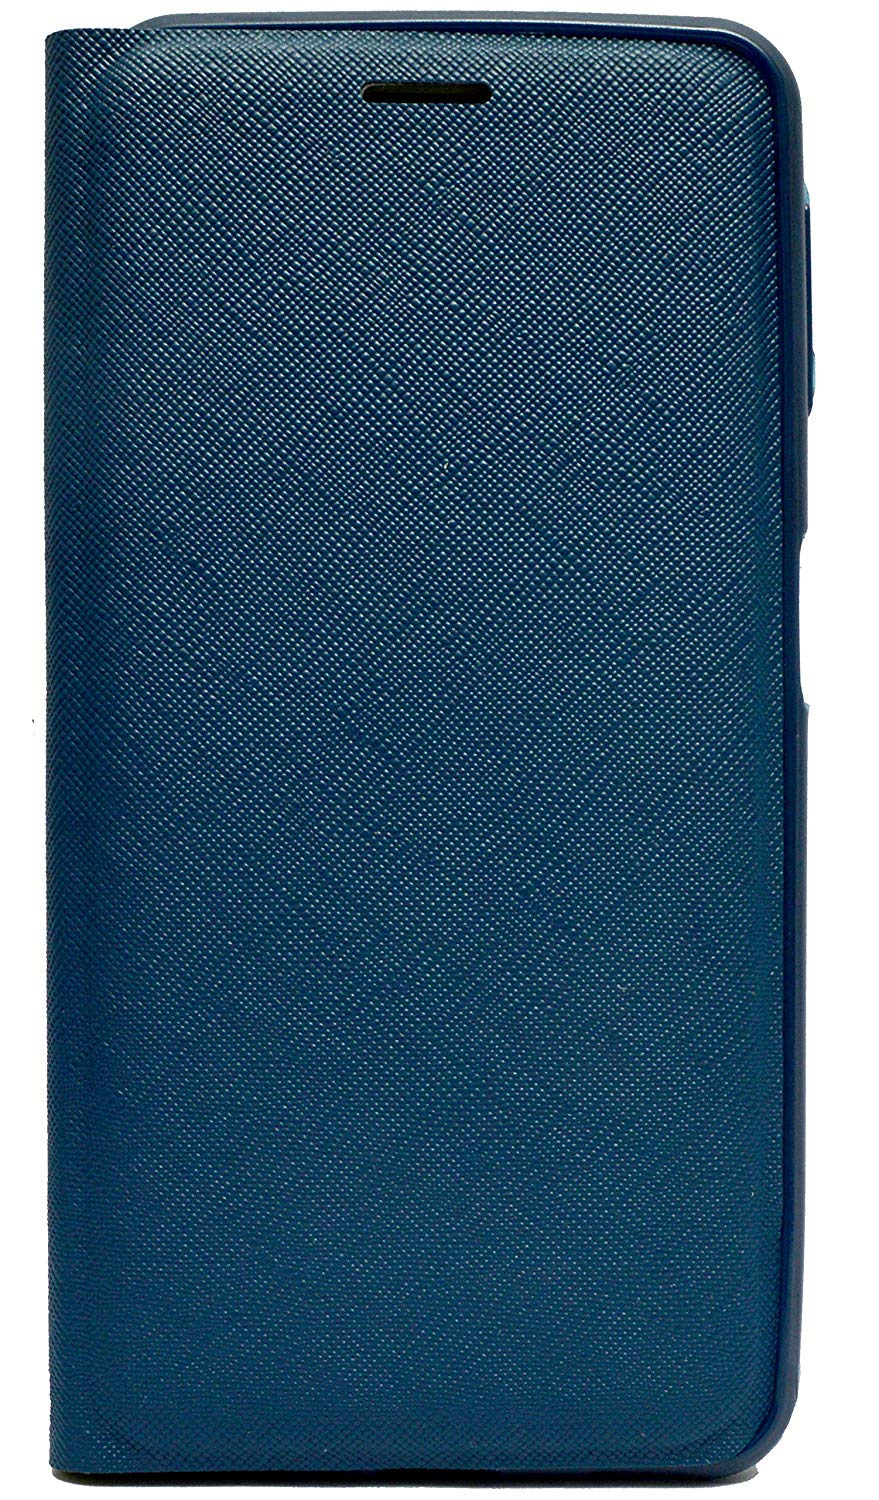 Samsung Galaxy A50 Textured Flip Cover Case with Card Holder - Blue